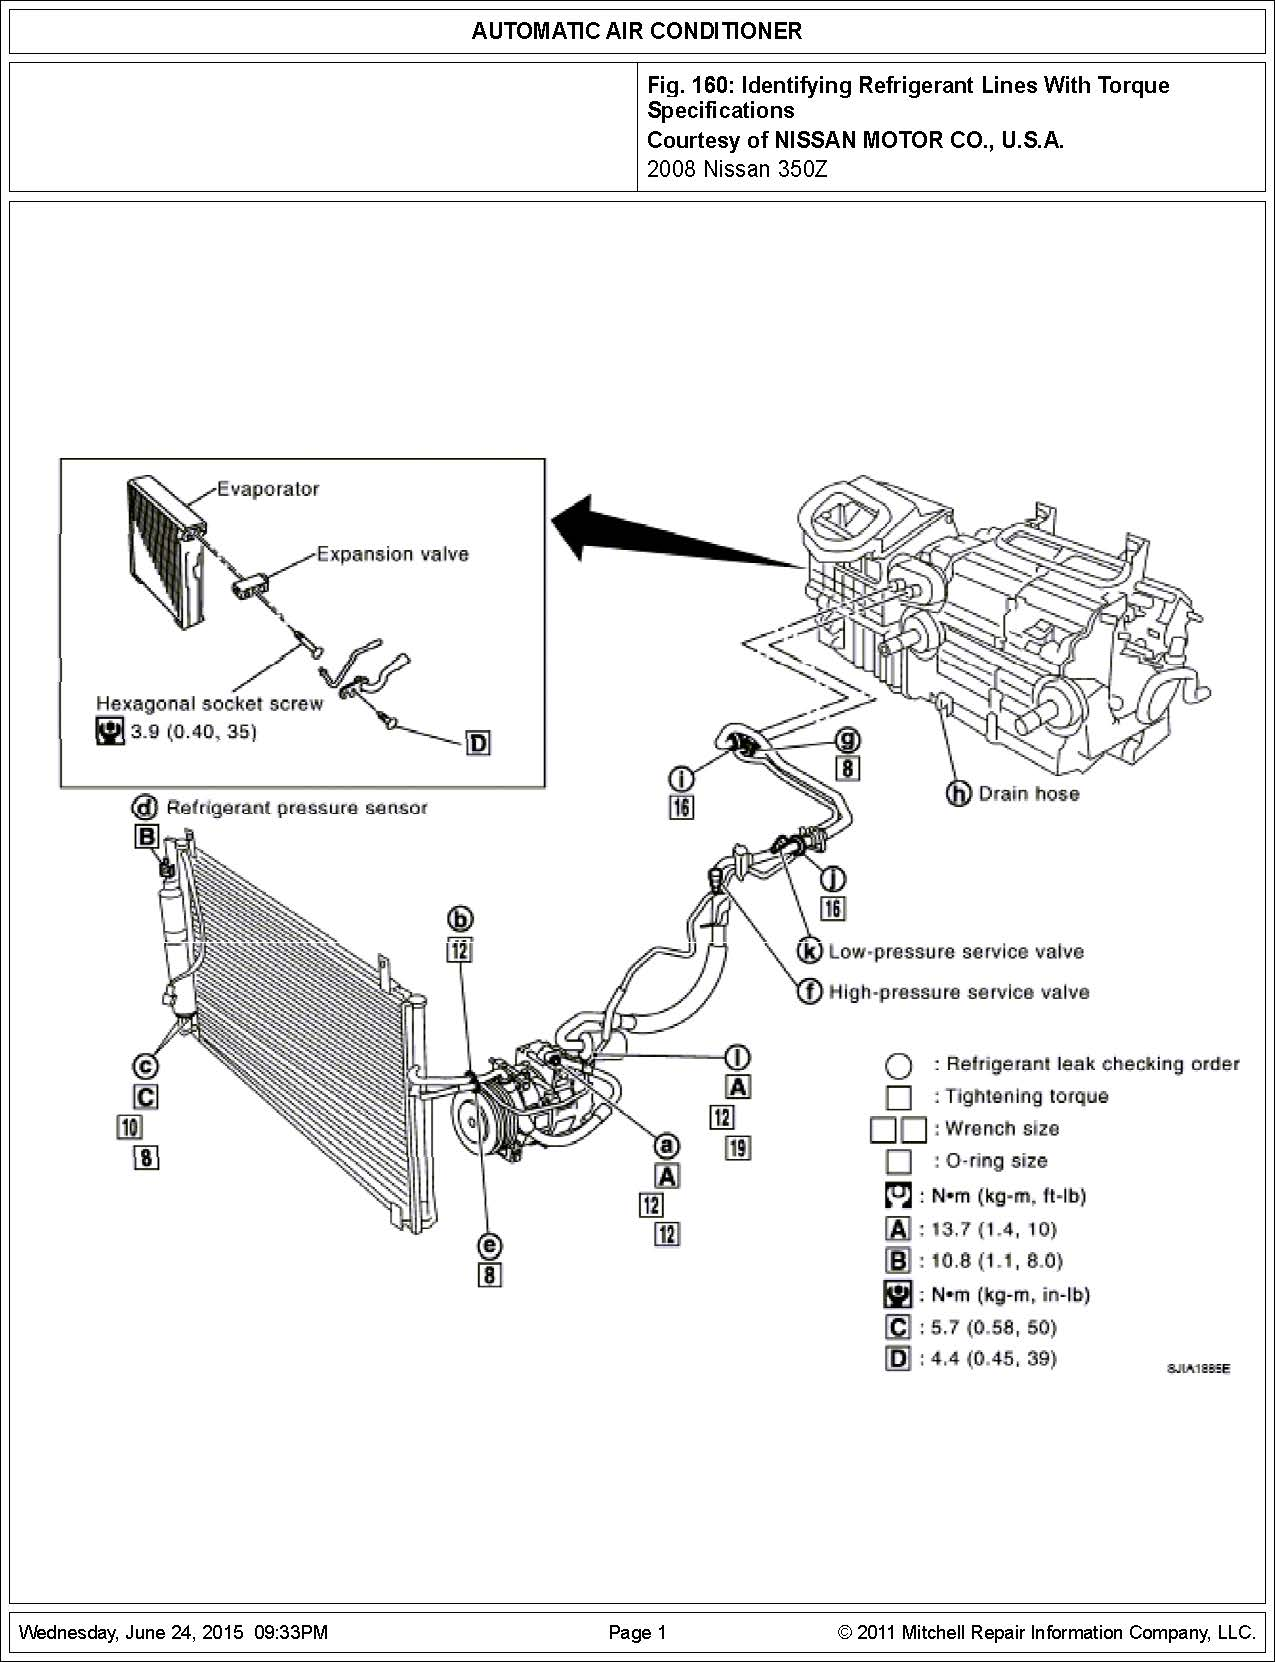 Nissan 350z Ac Diagram Car Wiring Diagrams Explained Need Help Finding Air Conditioning High Low Port My350z Com Rh 2004 Bose